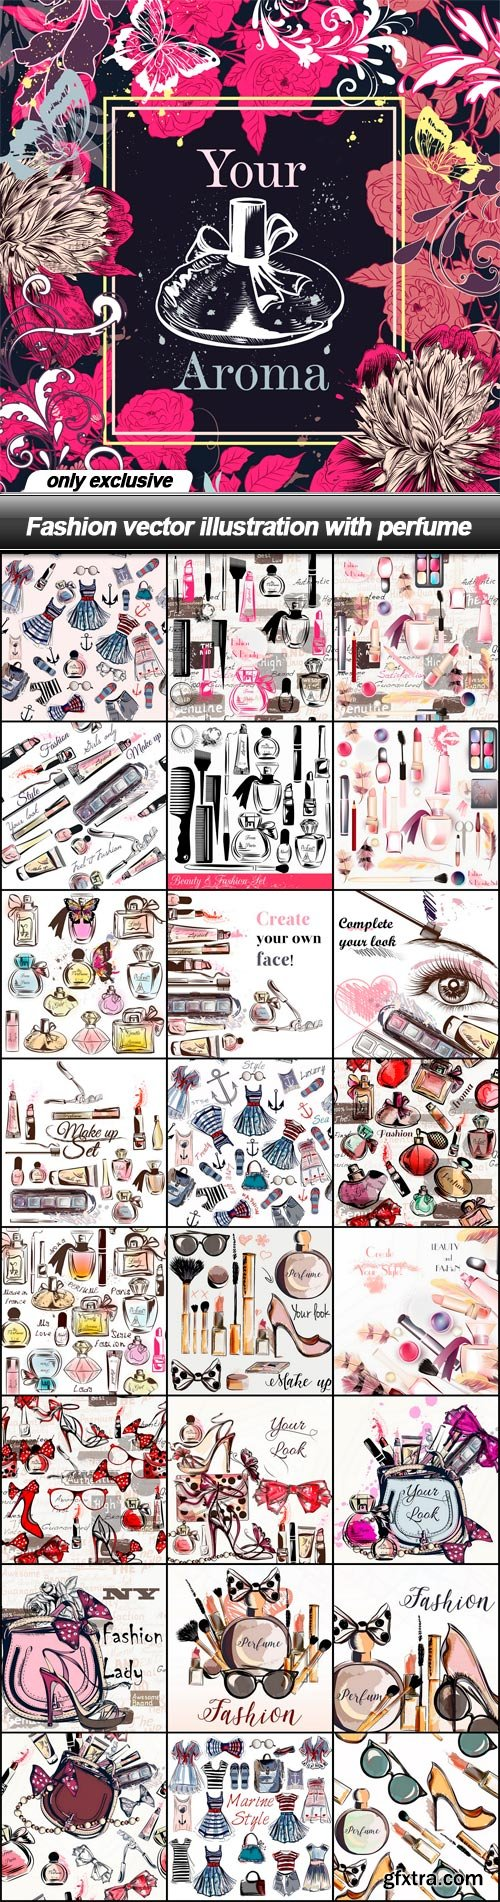 Fashion vector illustration with perfume - 25 EPS